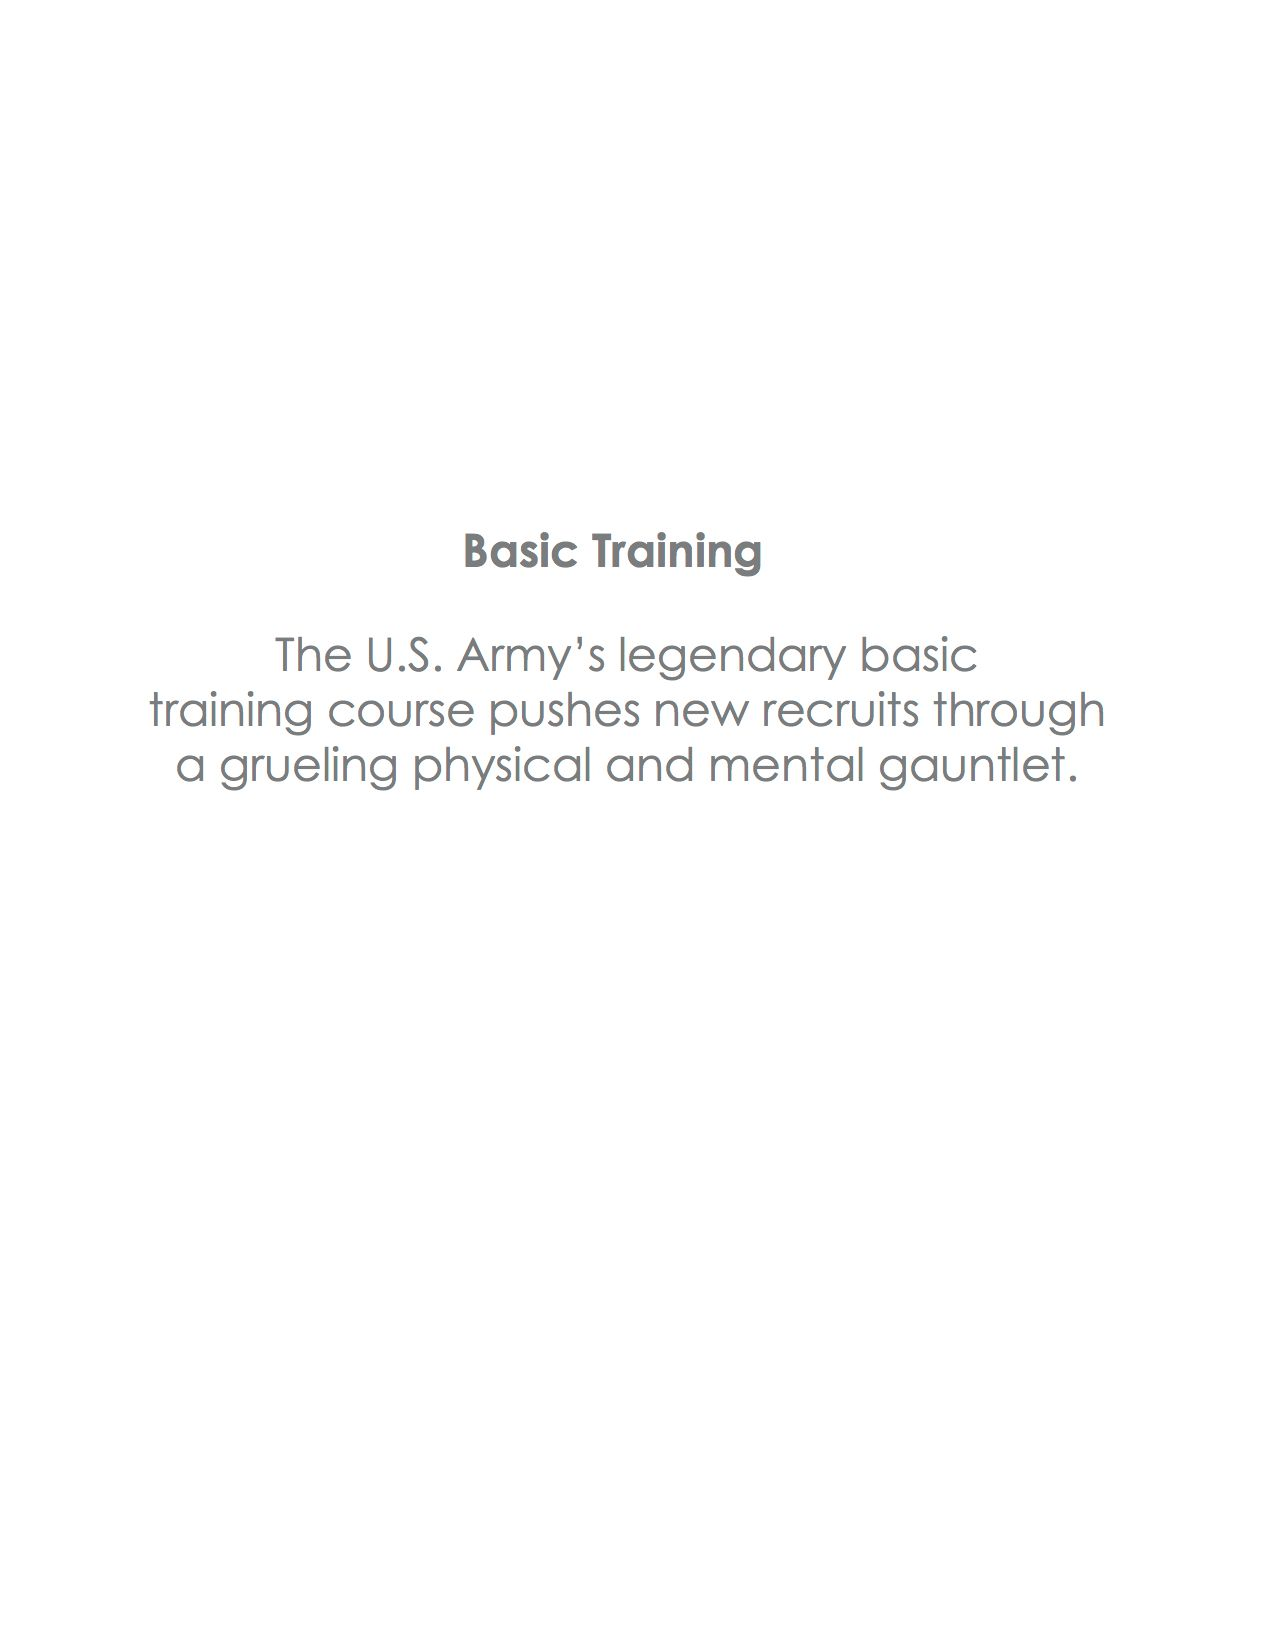 basic_training.jpg